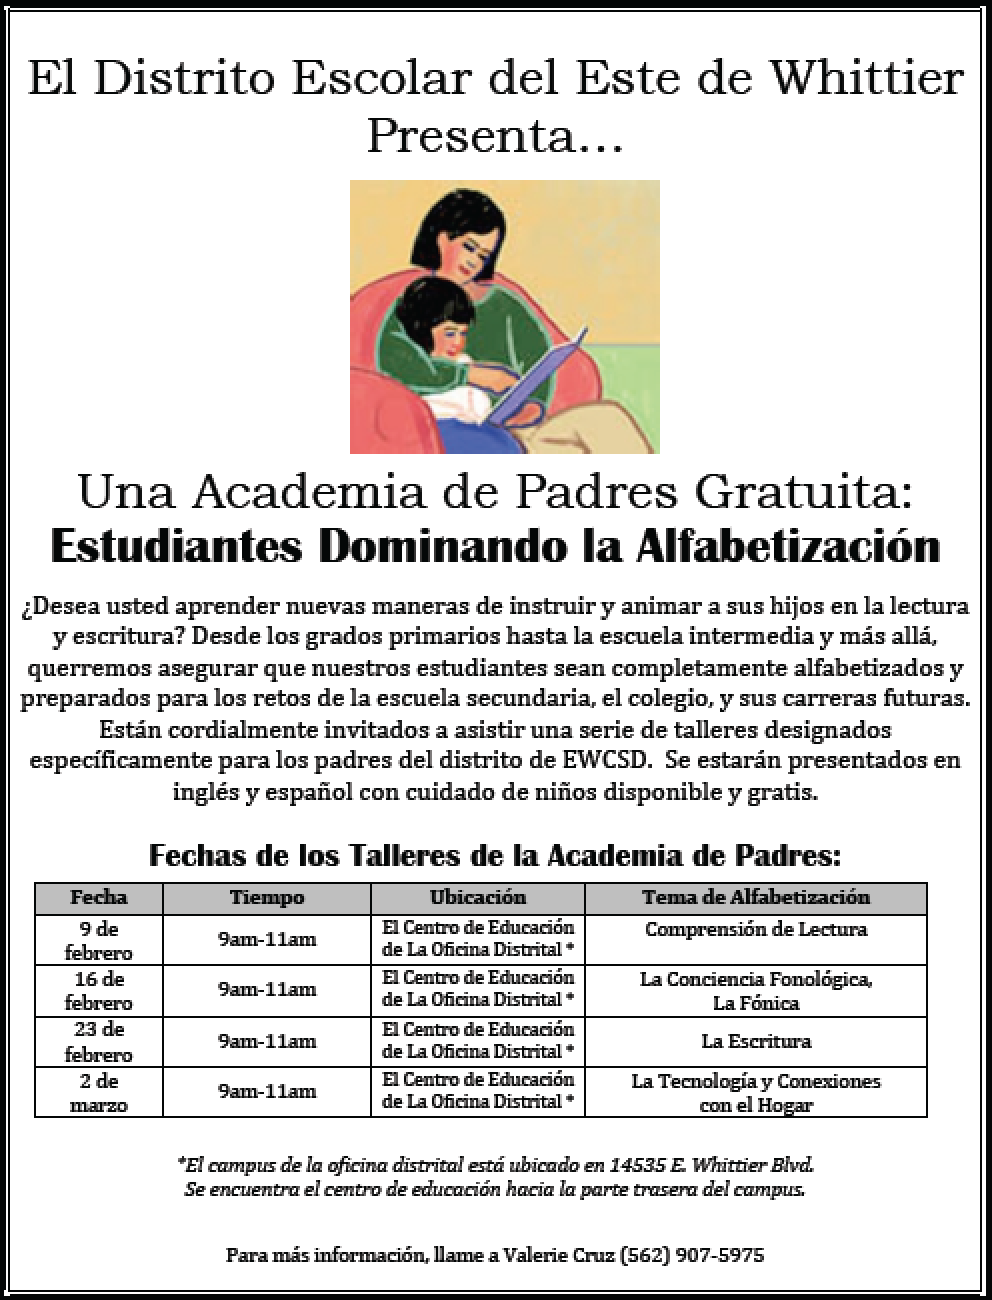 Promoting Student Literacy schedule in Spanish